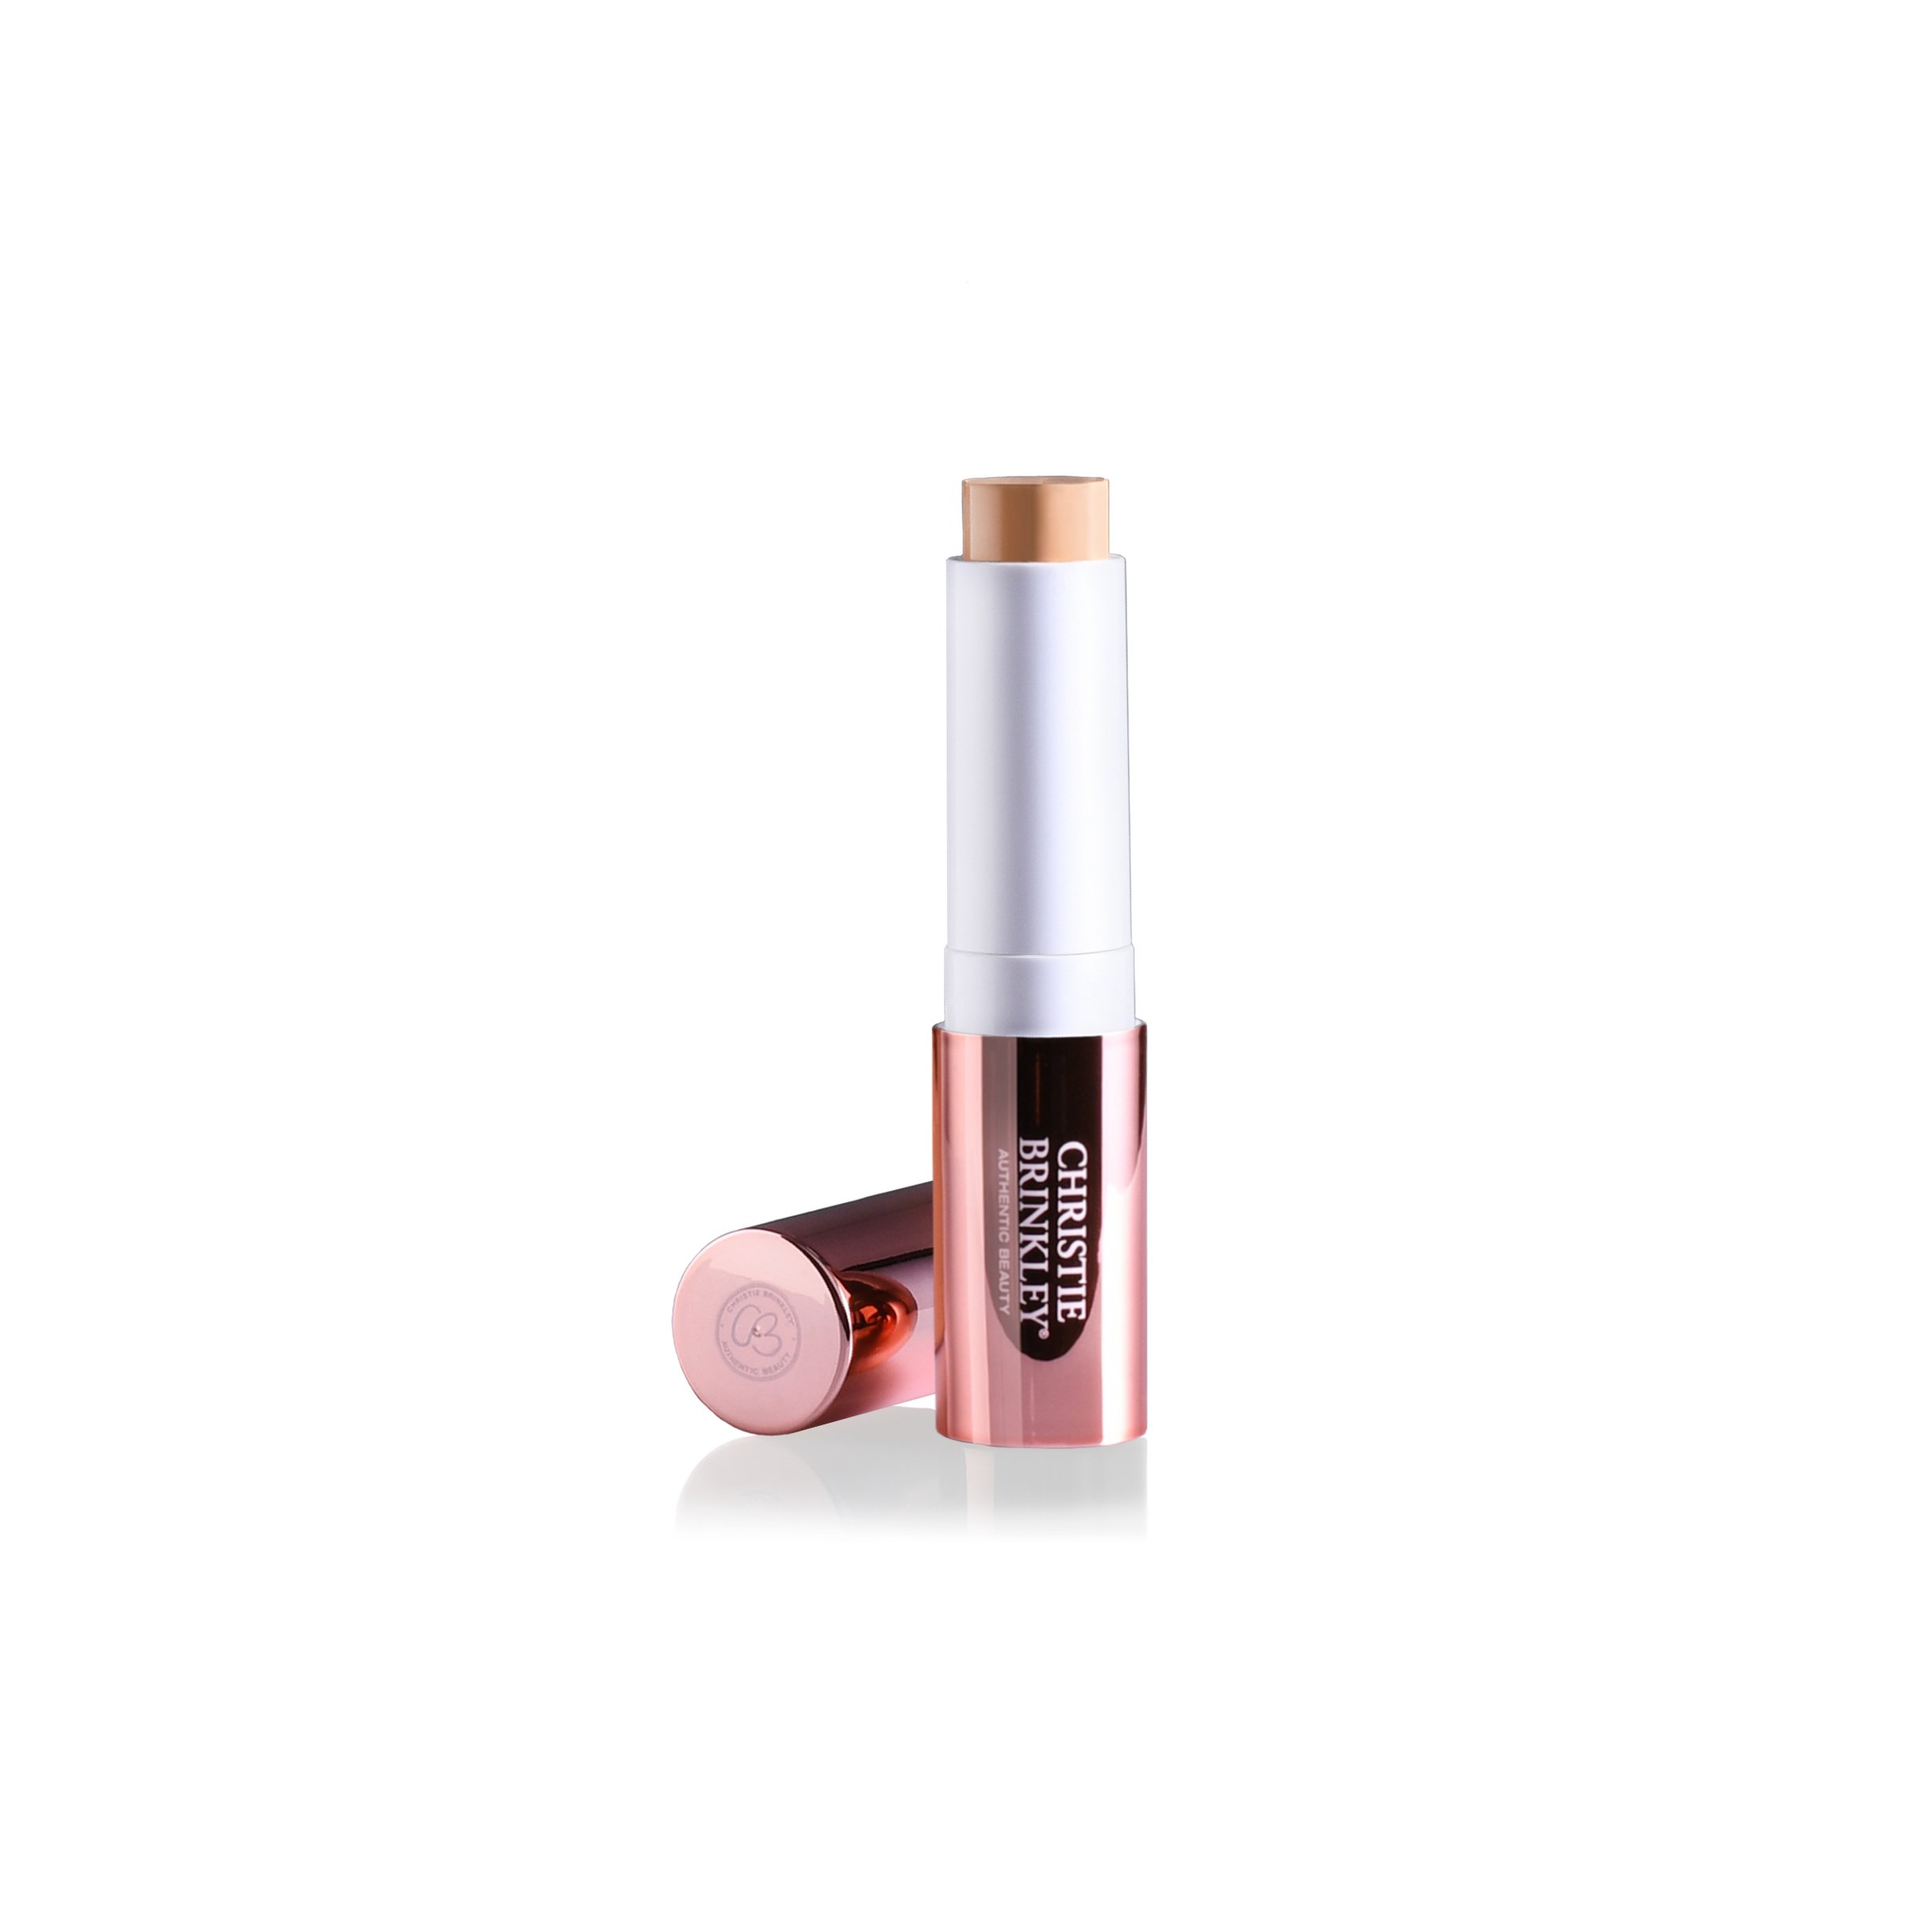 Christie Brinkley Authentic Beauty Secrets and Lines Under Eye Concealer, 0.16 oz (Light Warm)